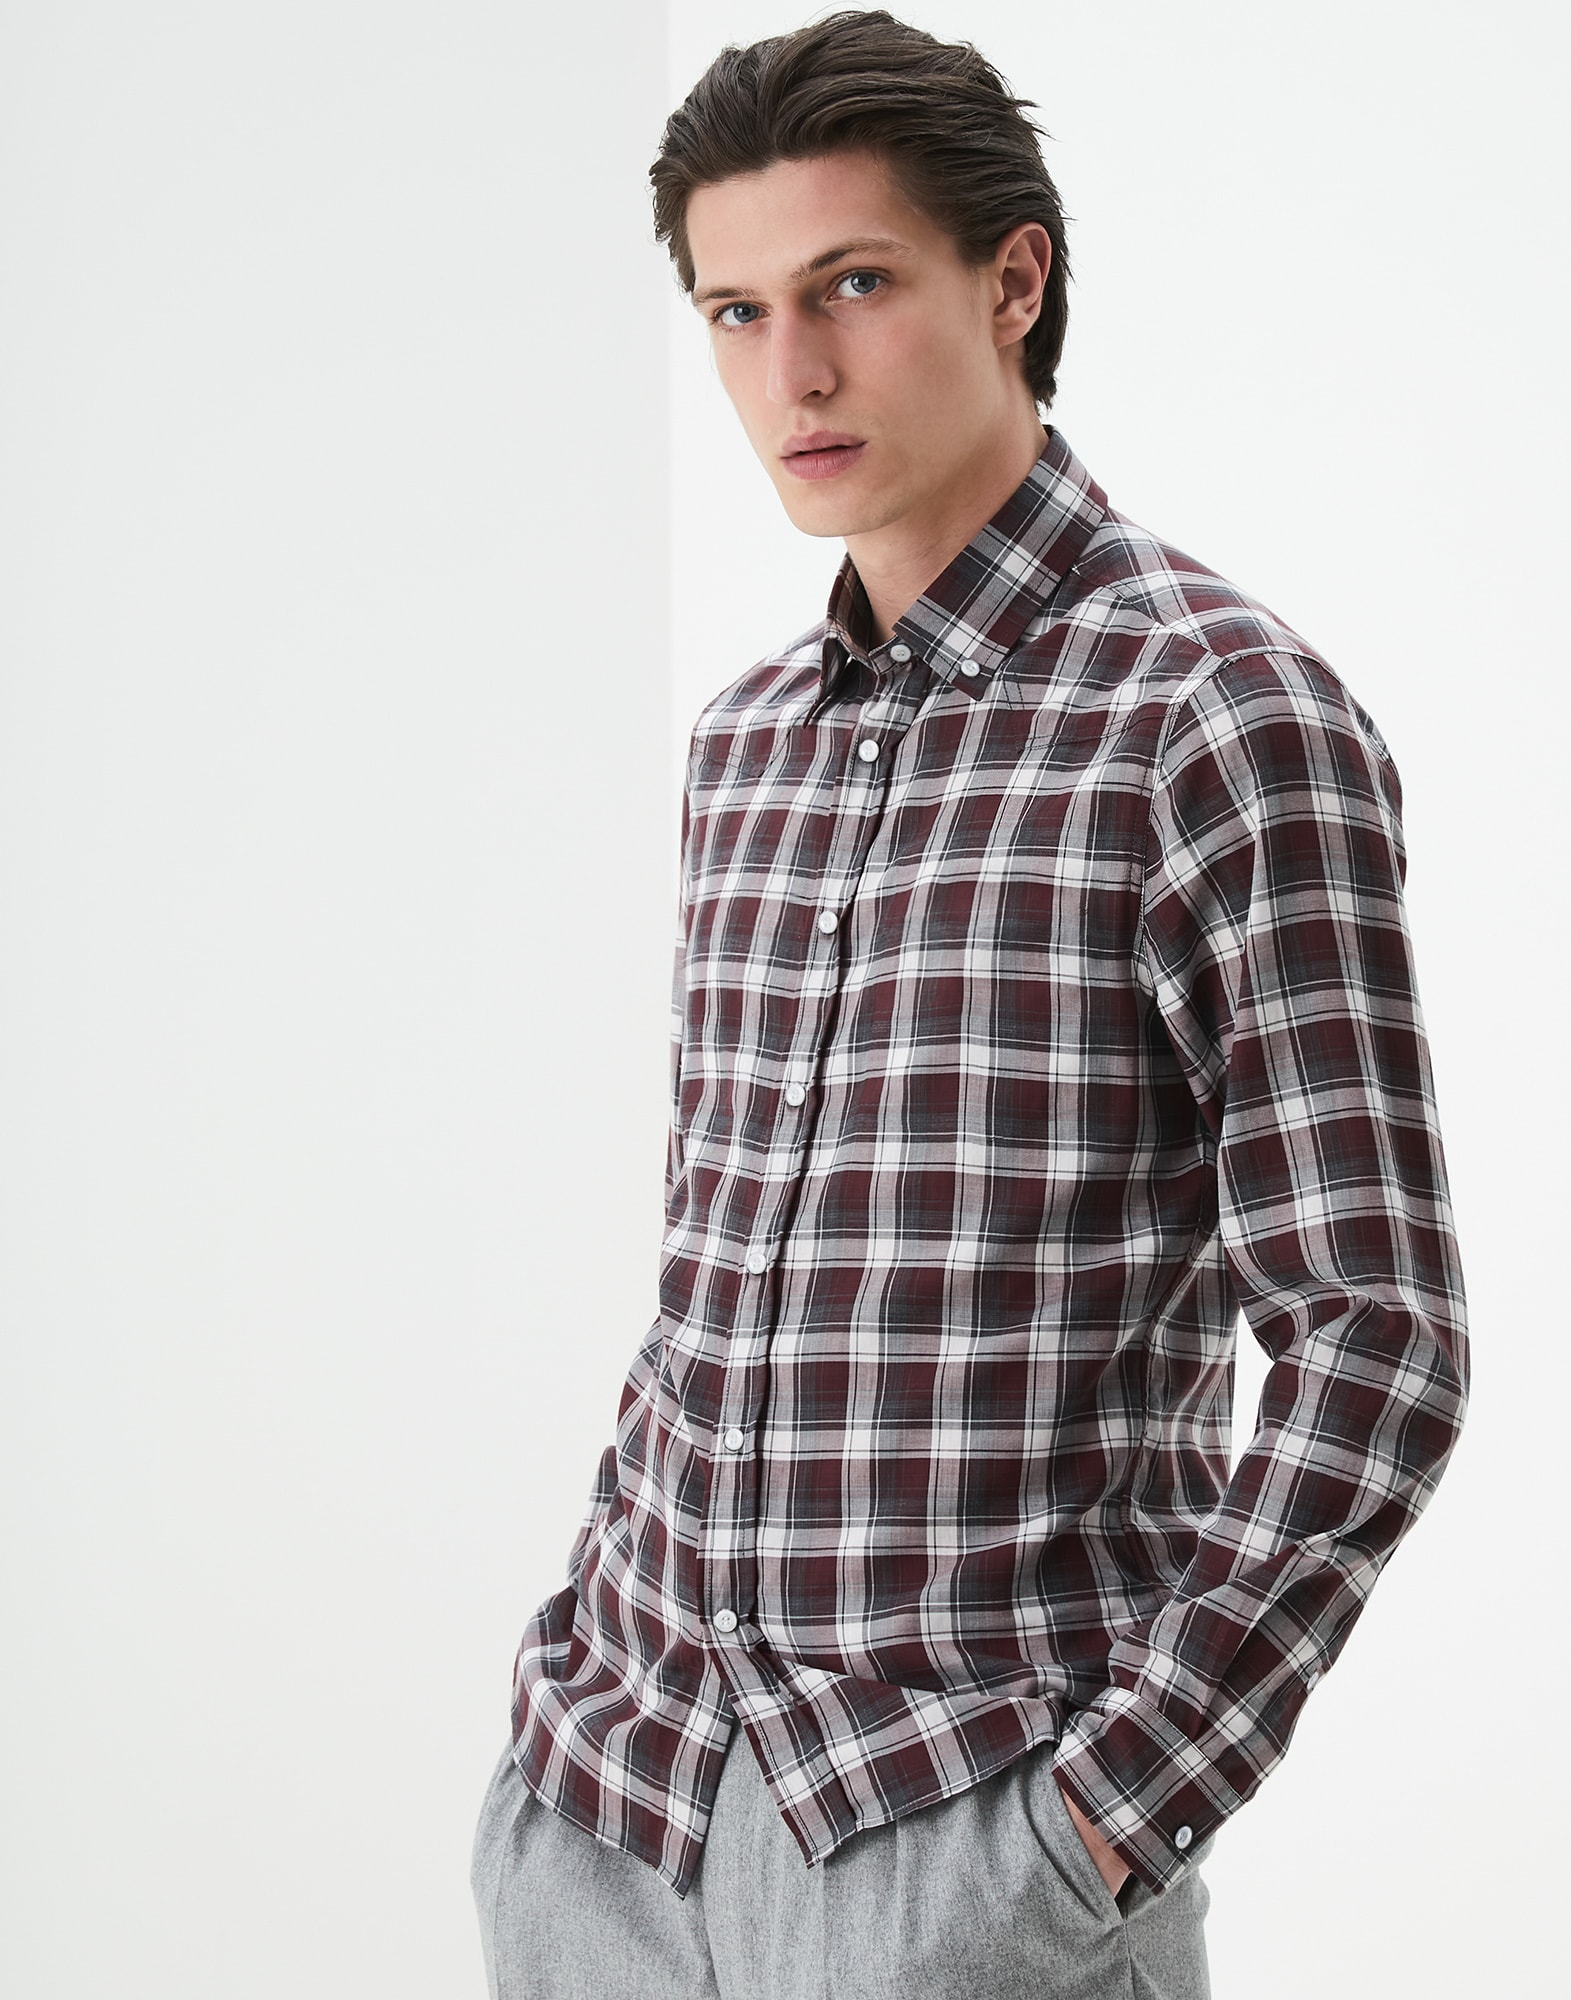 Button Down Shirt - Front view